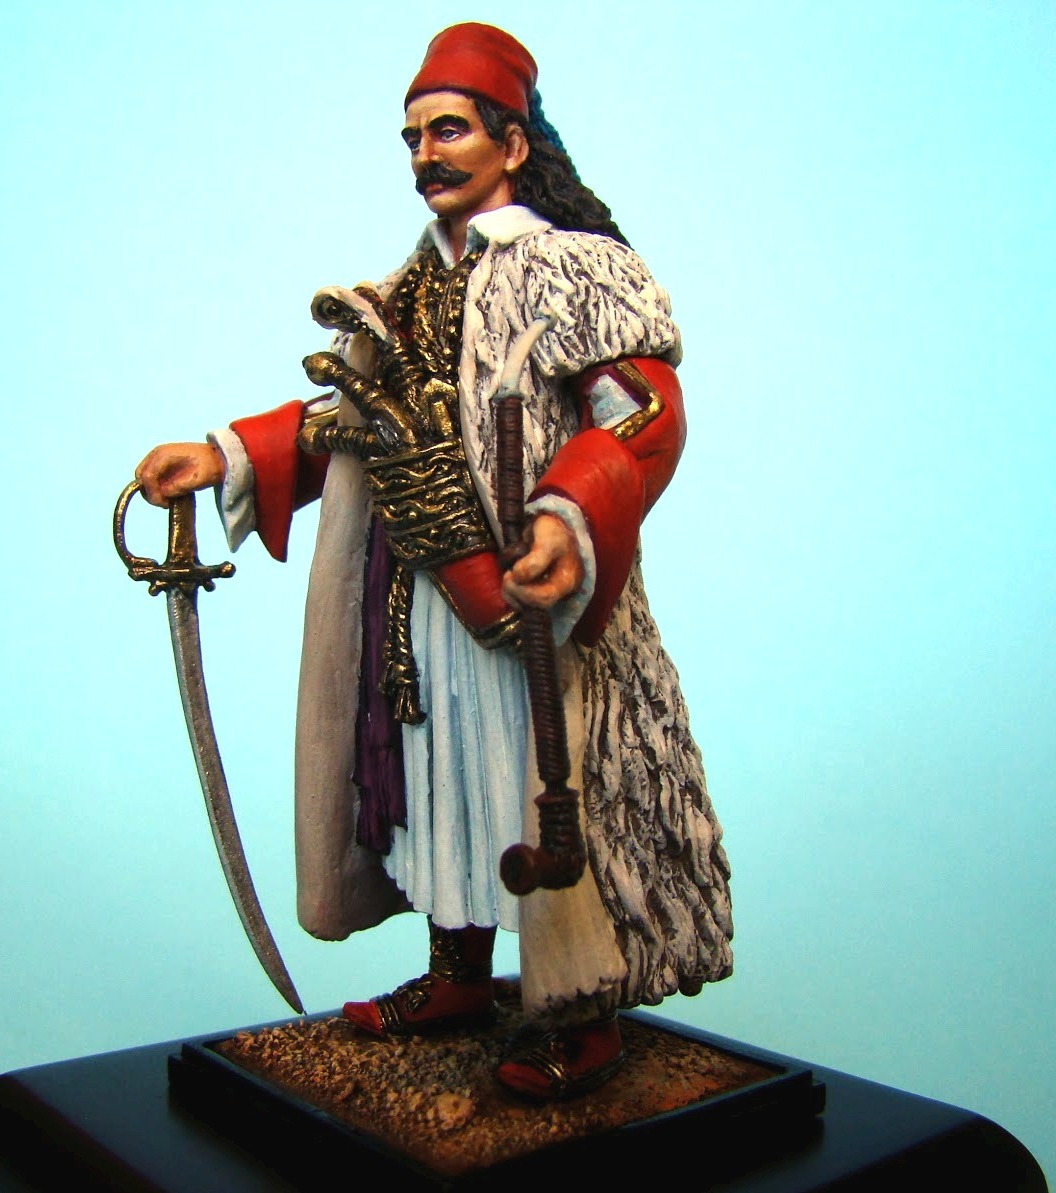 www.greekheroes.gr/miniatures-figures/54mm/Greek-revolution-1821-markos-botsaris/